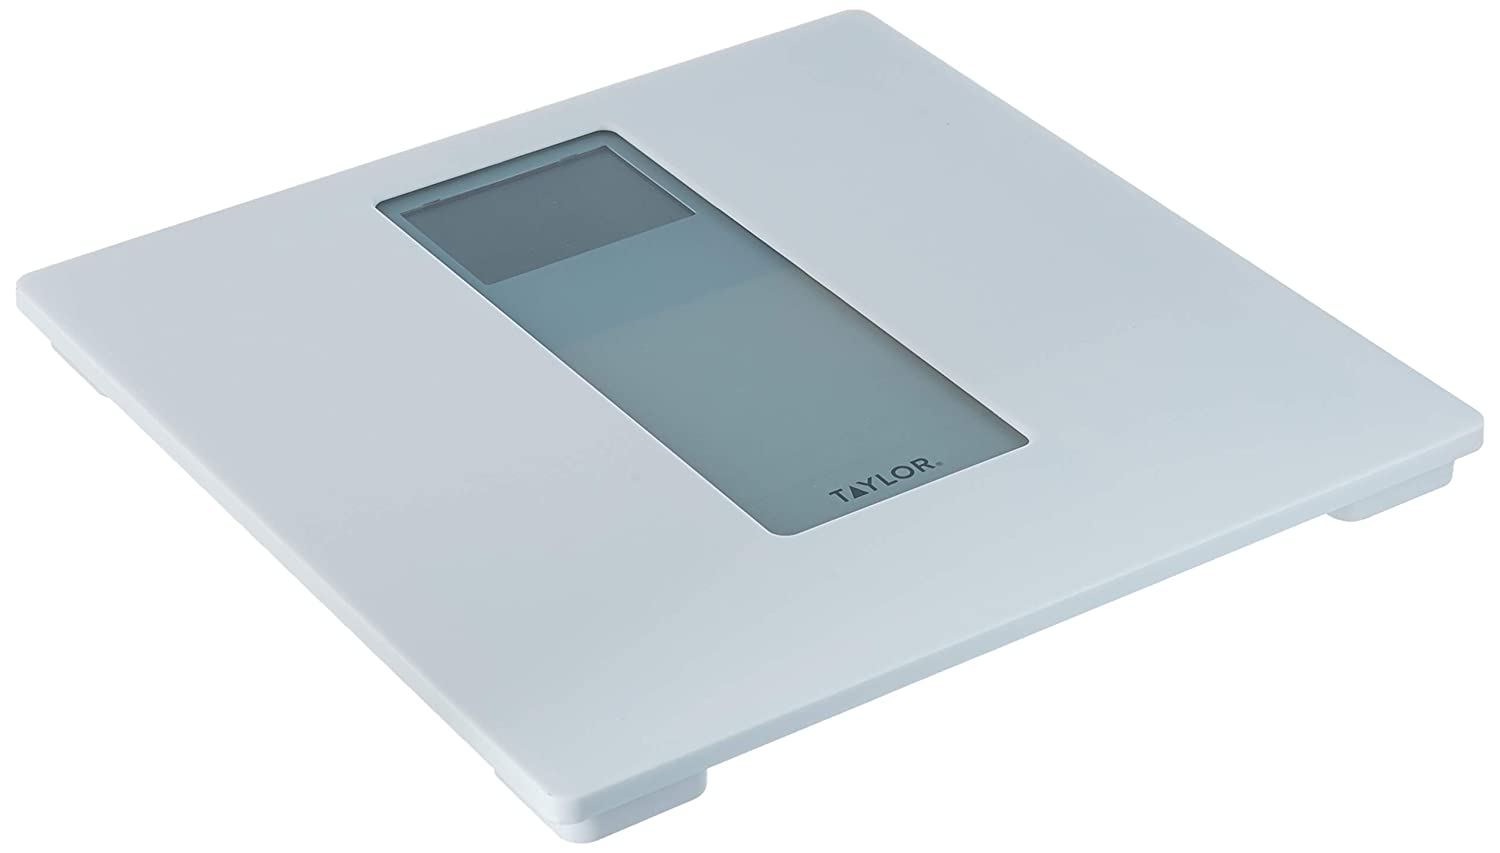 Taylor Precision Products Plastic Digital Bath Scale, White Gray